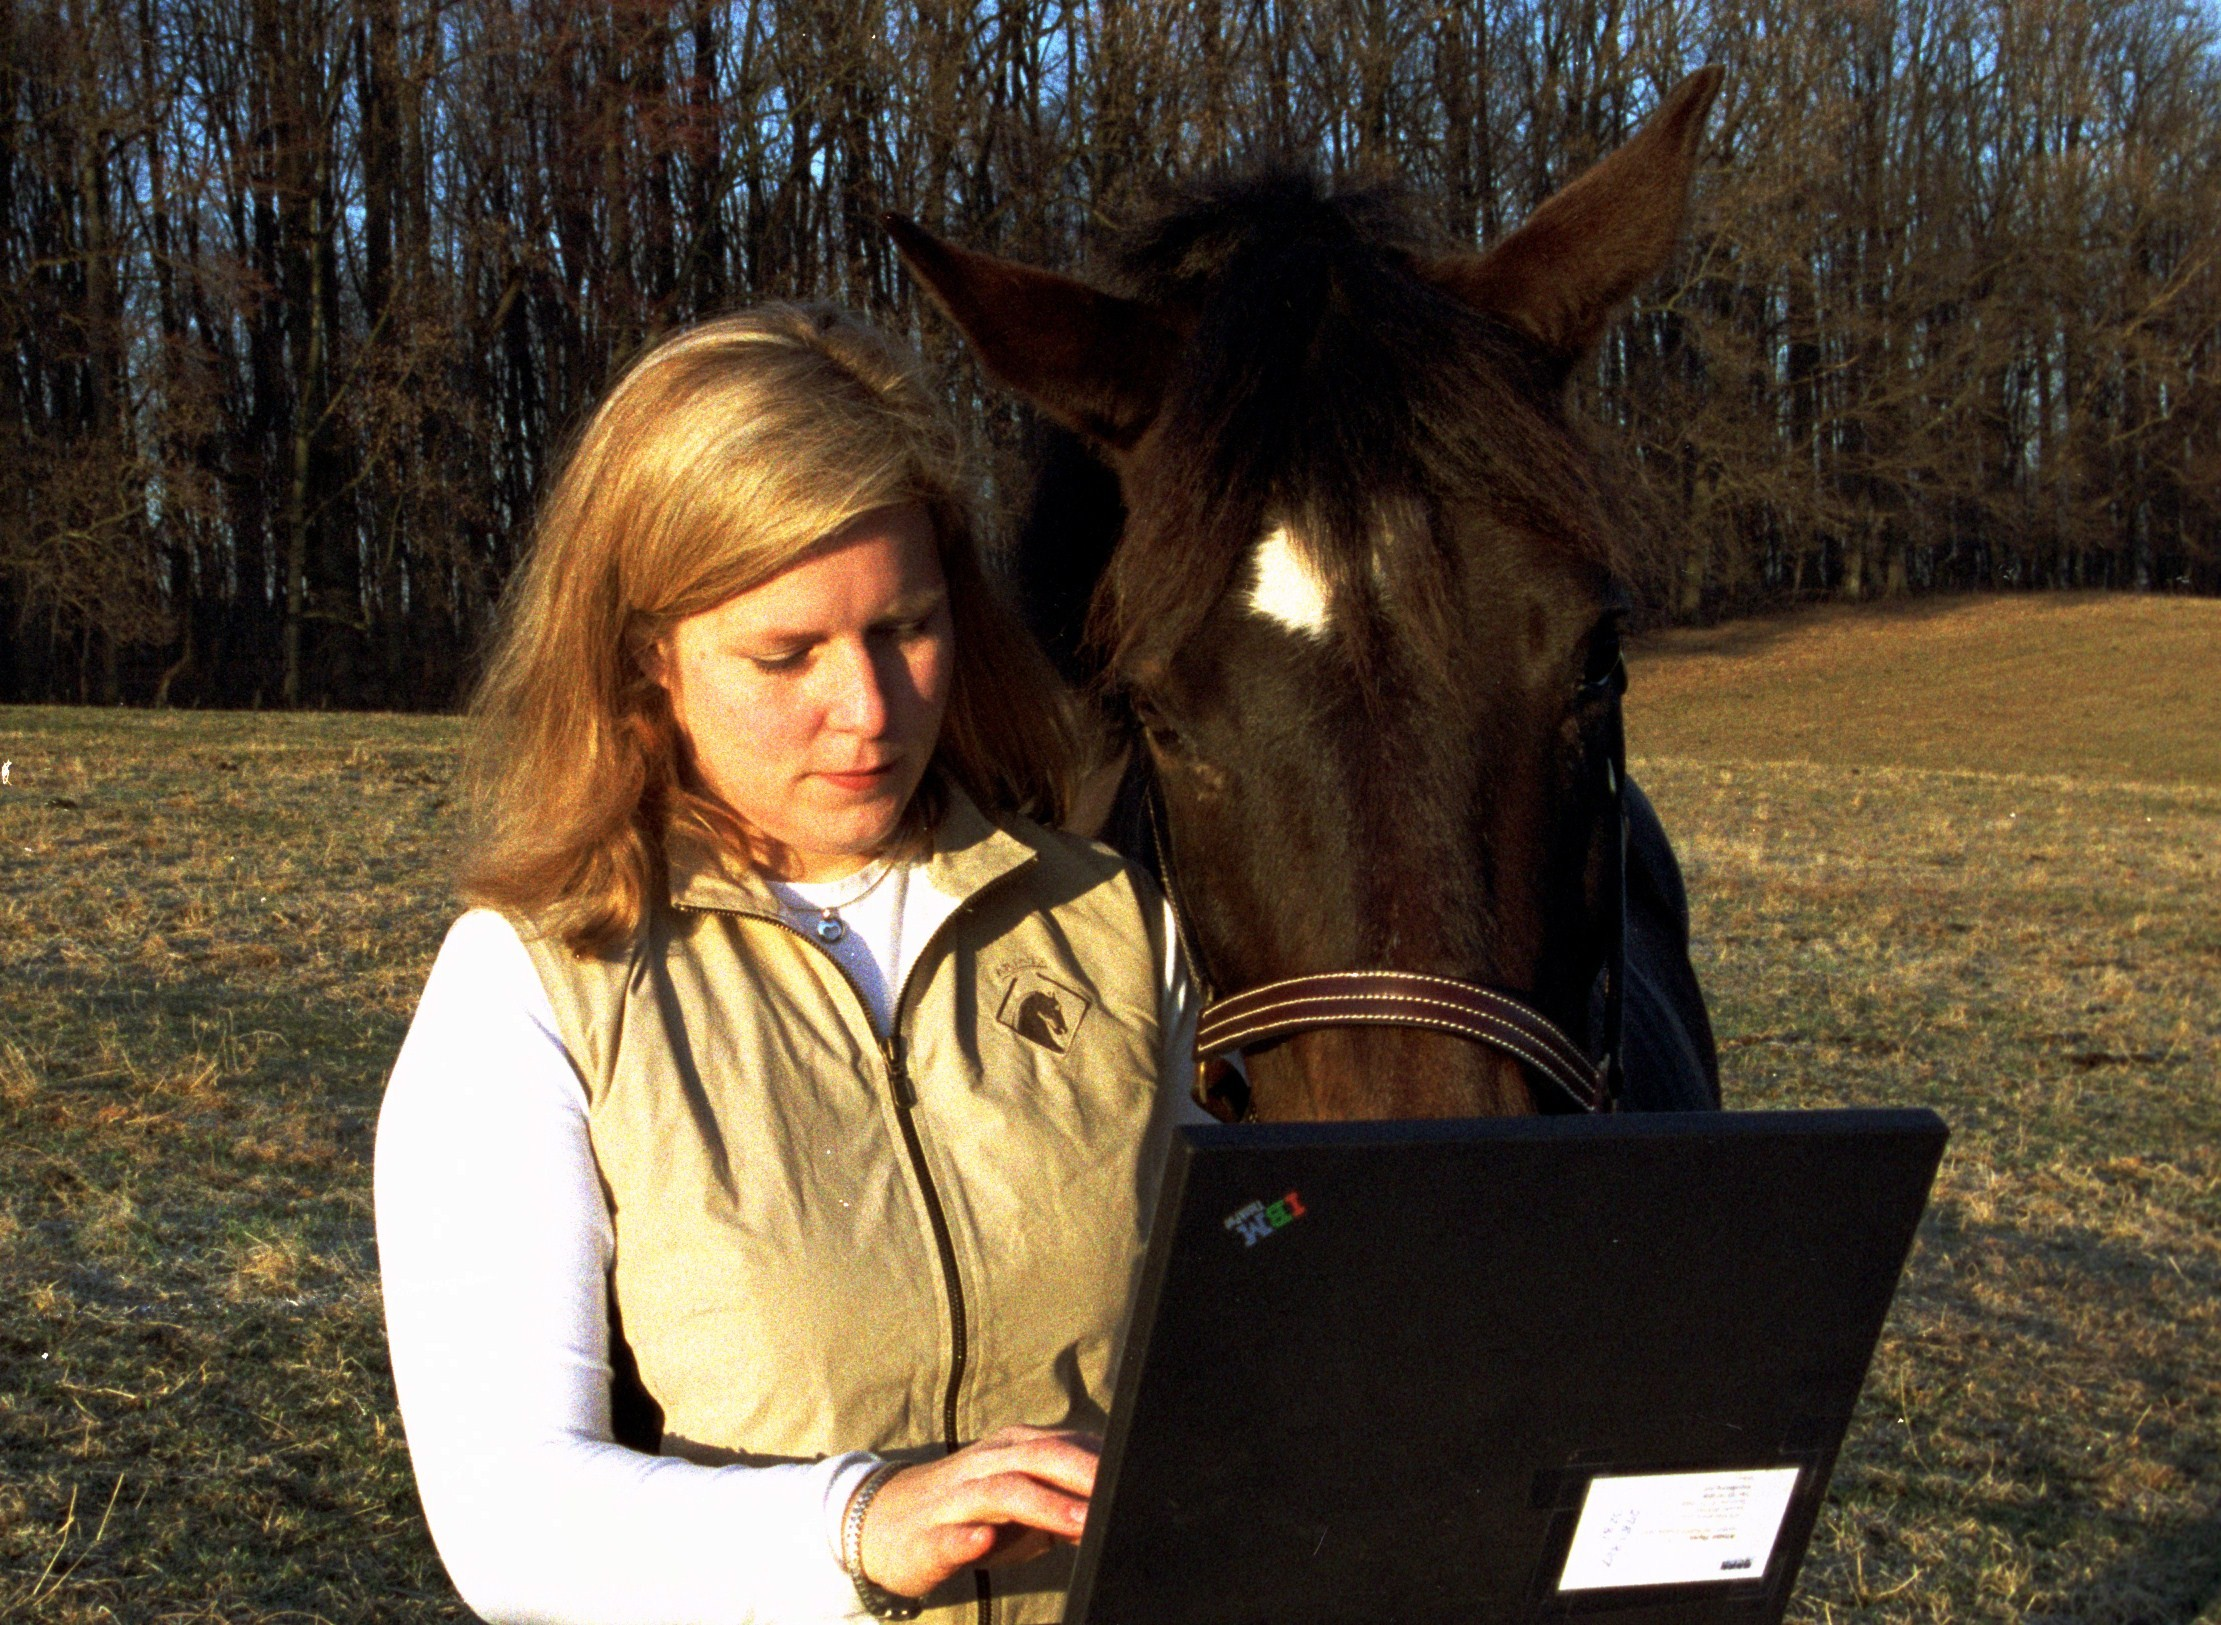 Me and Windy getting down the facts in the old days, at Callithea Farm in Potomac, Maryland.